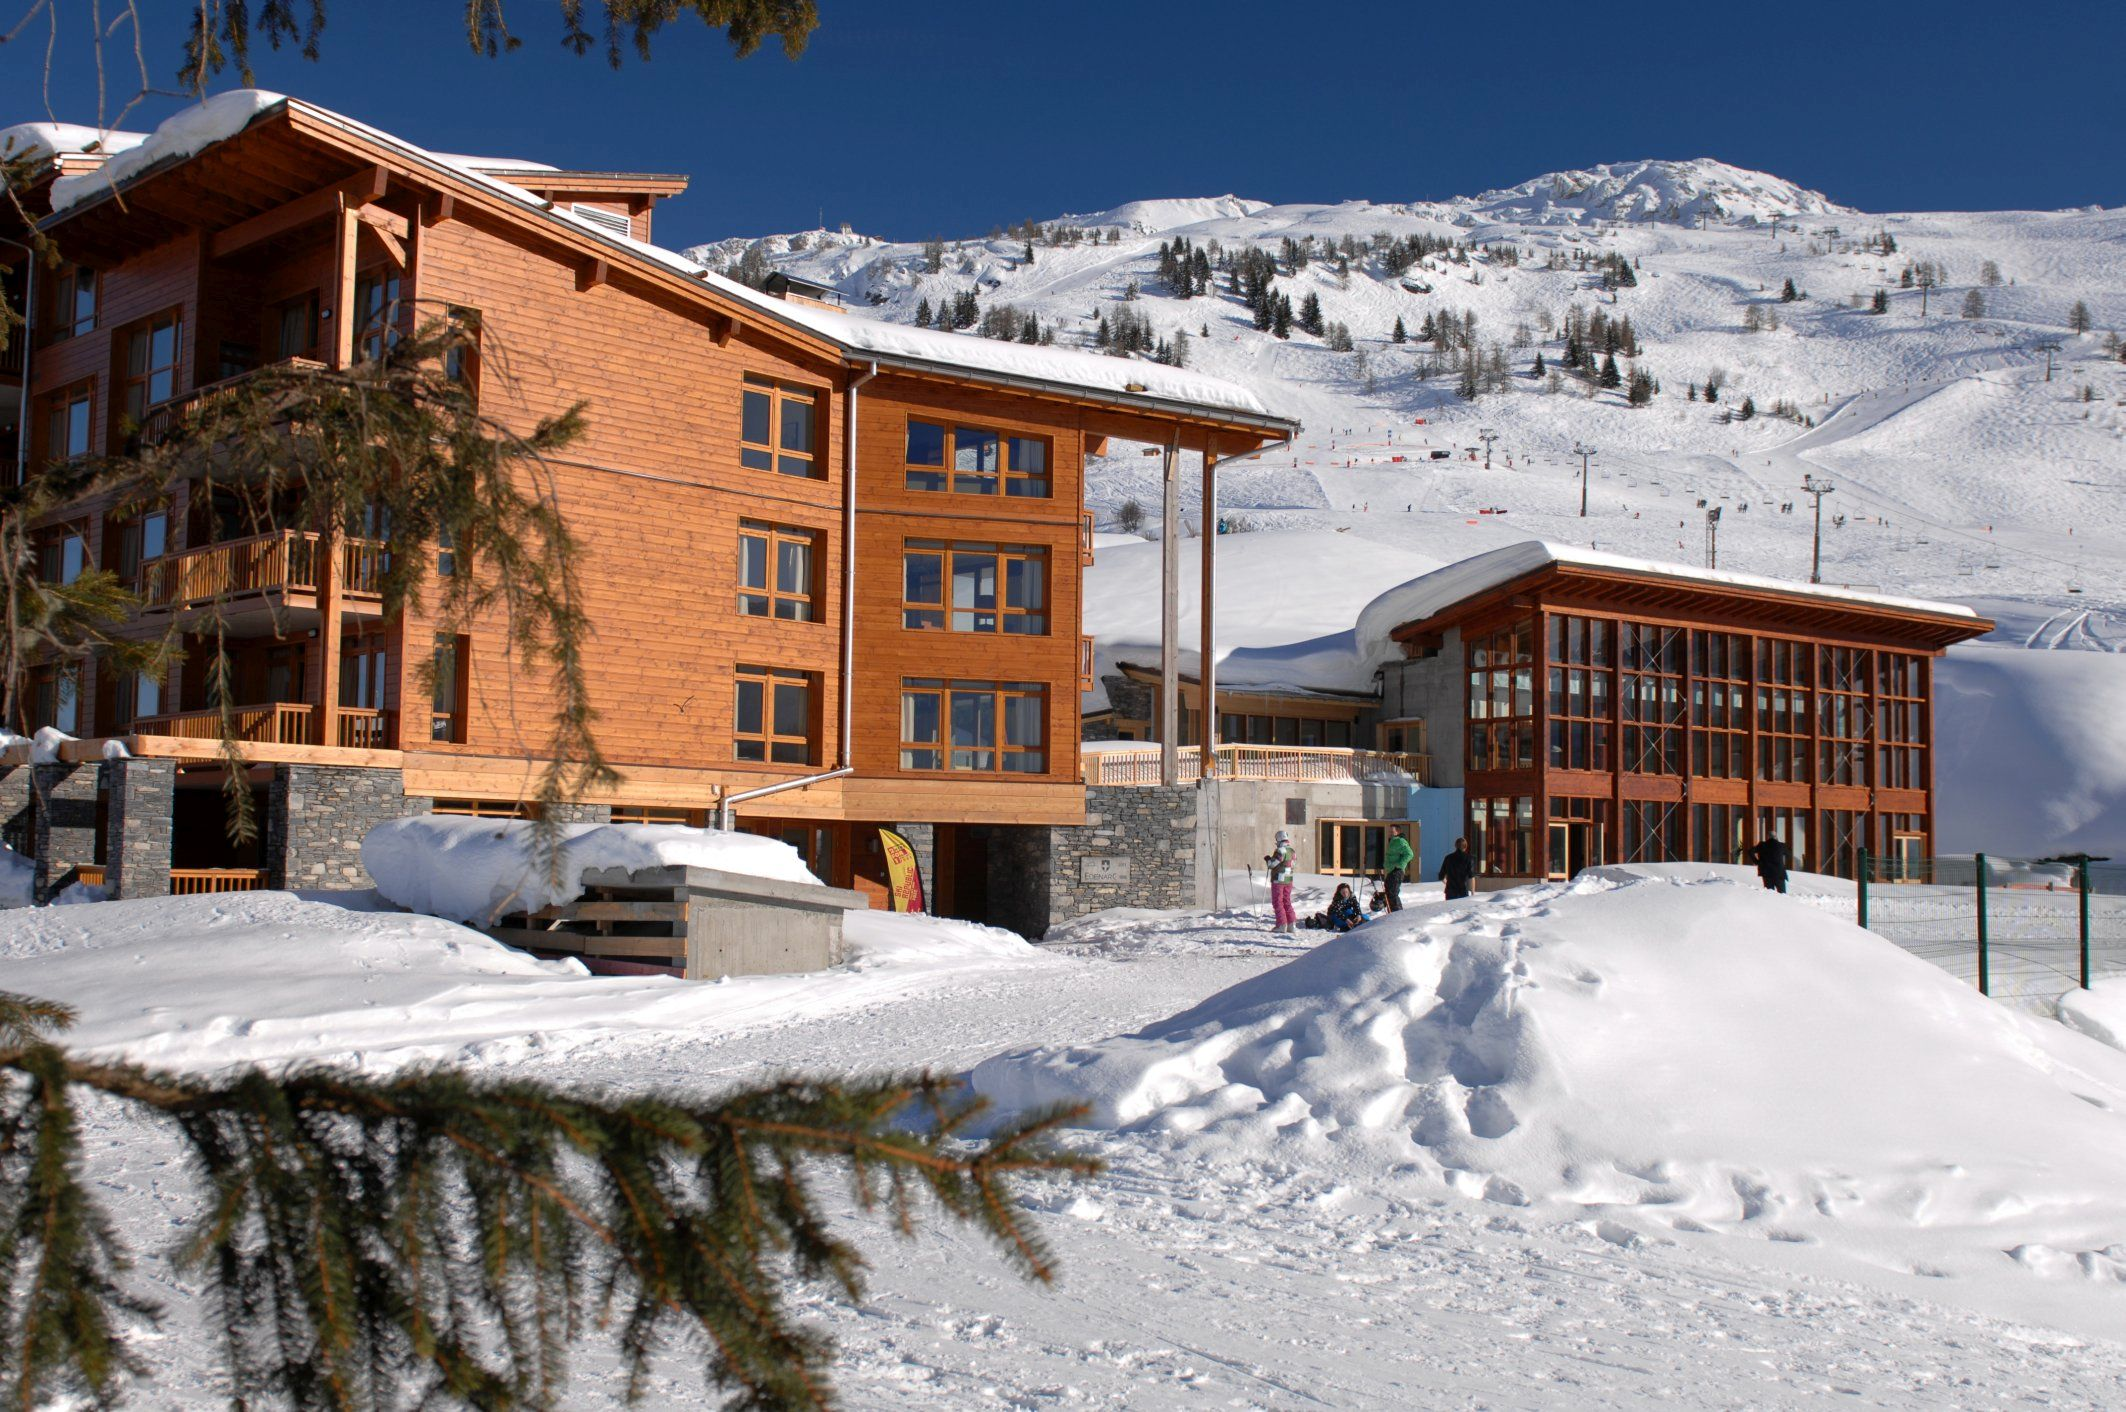 Special week - Chill Week - Les Arcs